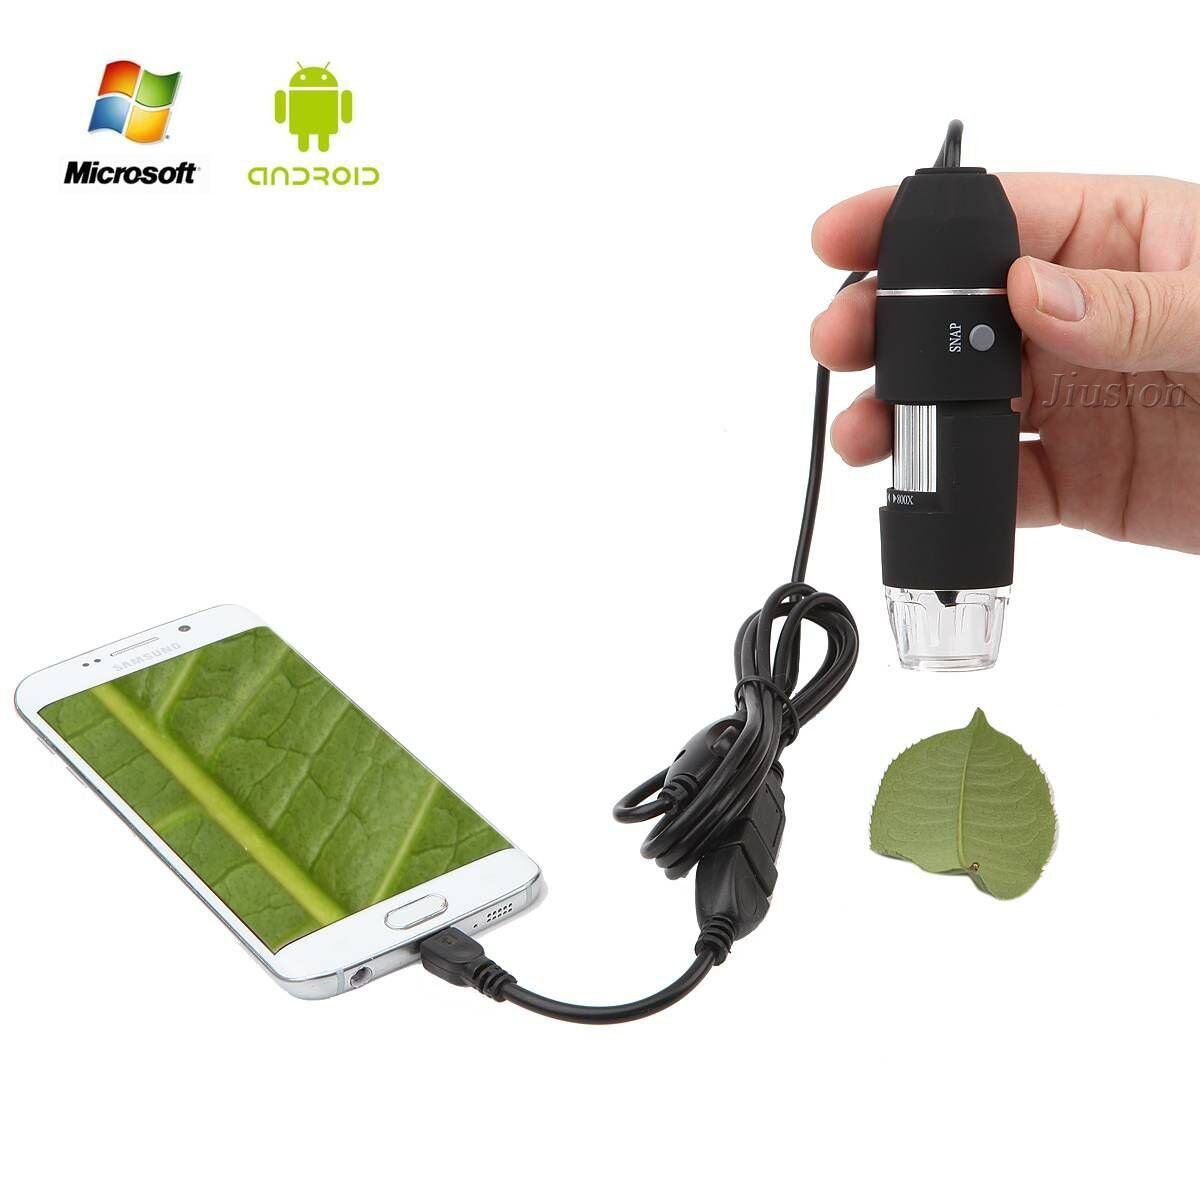 500x 800x 1000x USB microscopio Digital cámara portátil aumento endoscopio OTG soporte para Samsung Android Mobile Window Mac